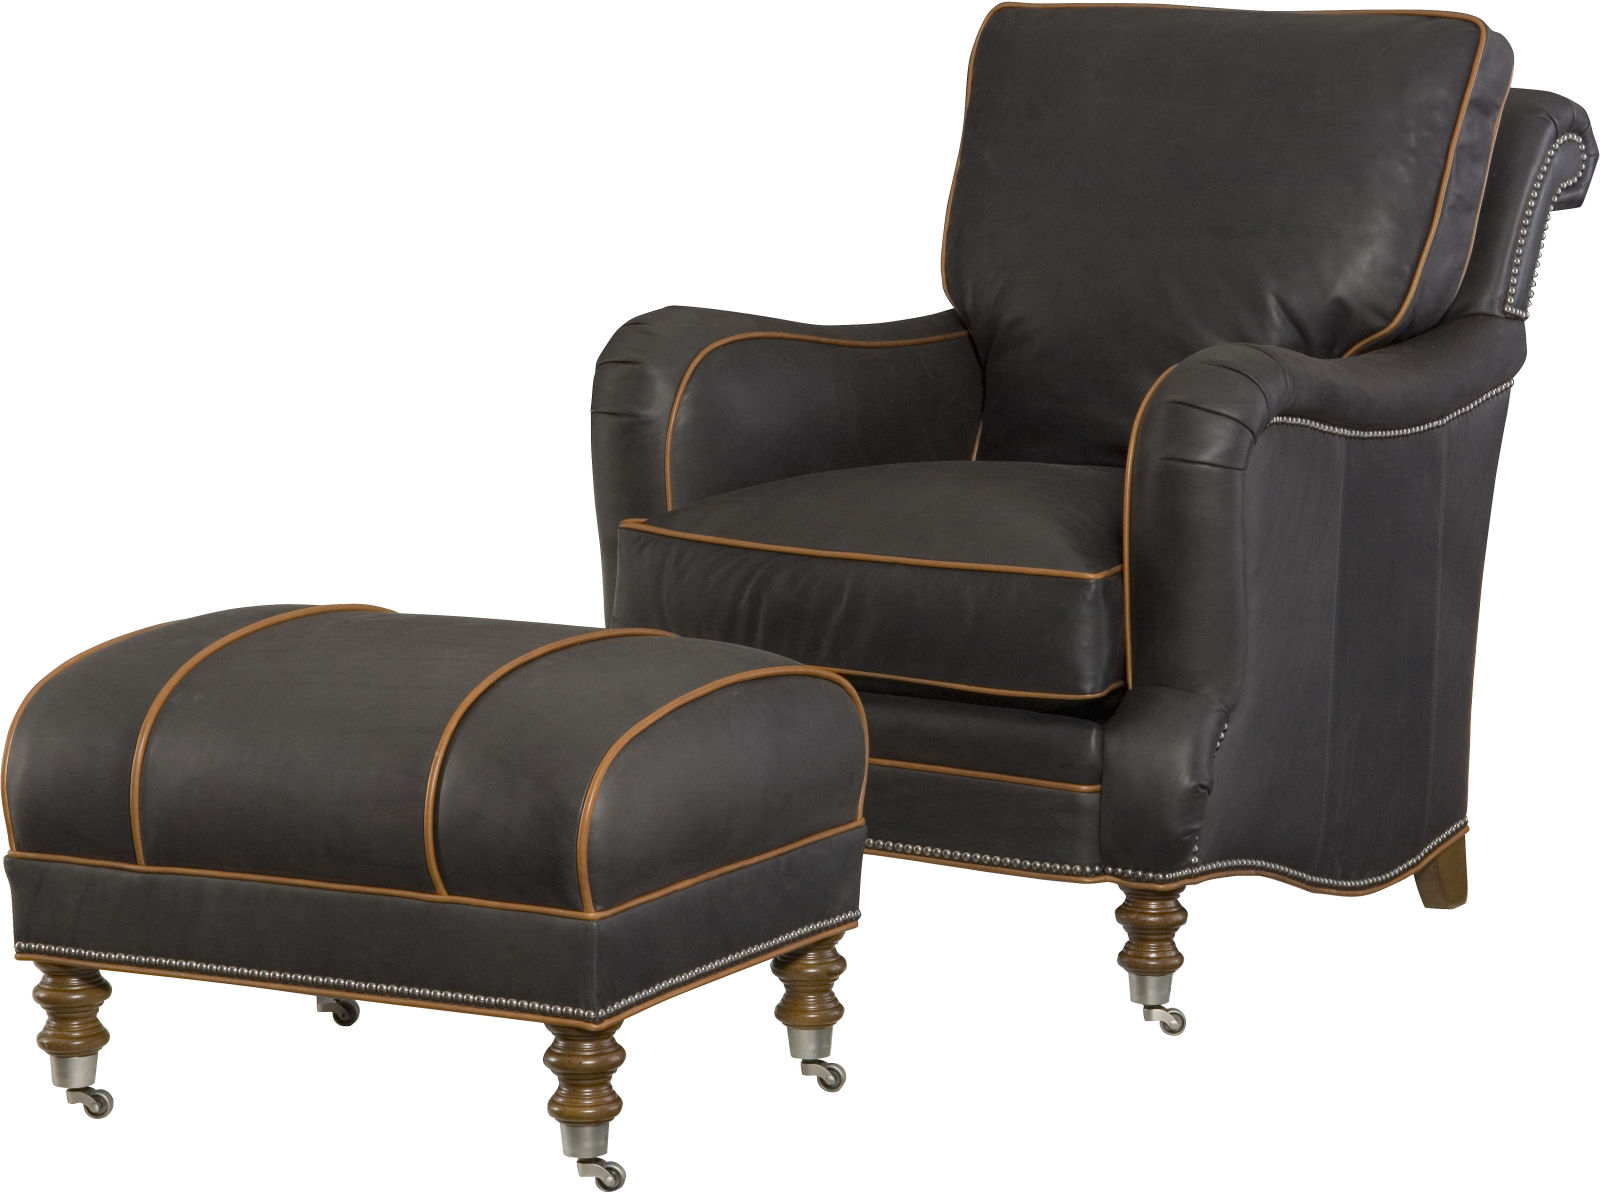 wesley hall sofas habitat chester leather sofa furniture hickory nc product page l7008